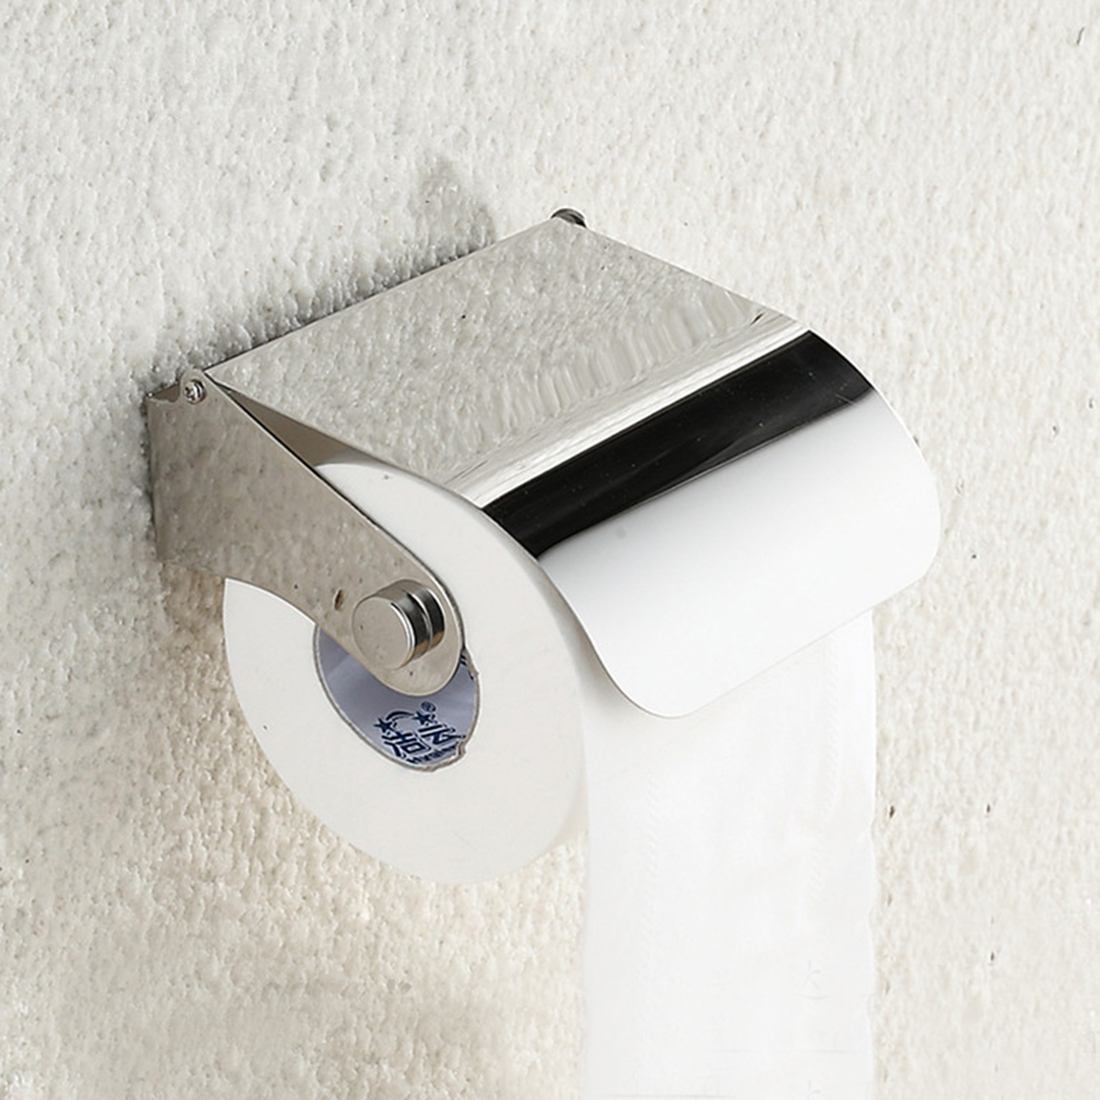 Best Of Flush Mount toilet Paper Holder